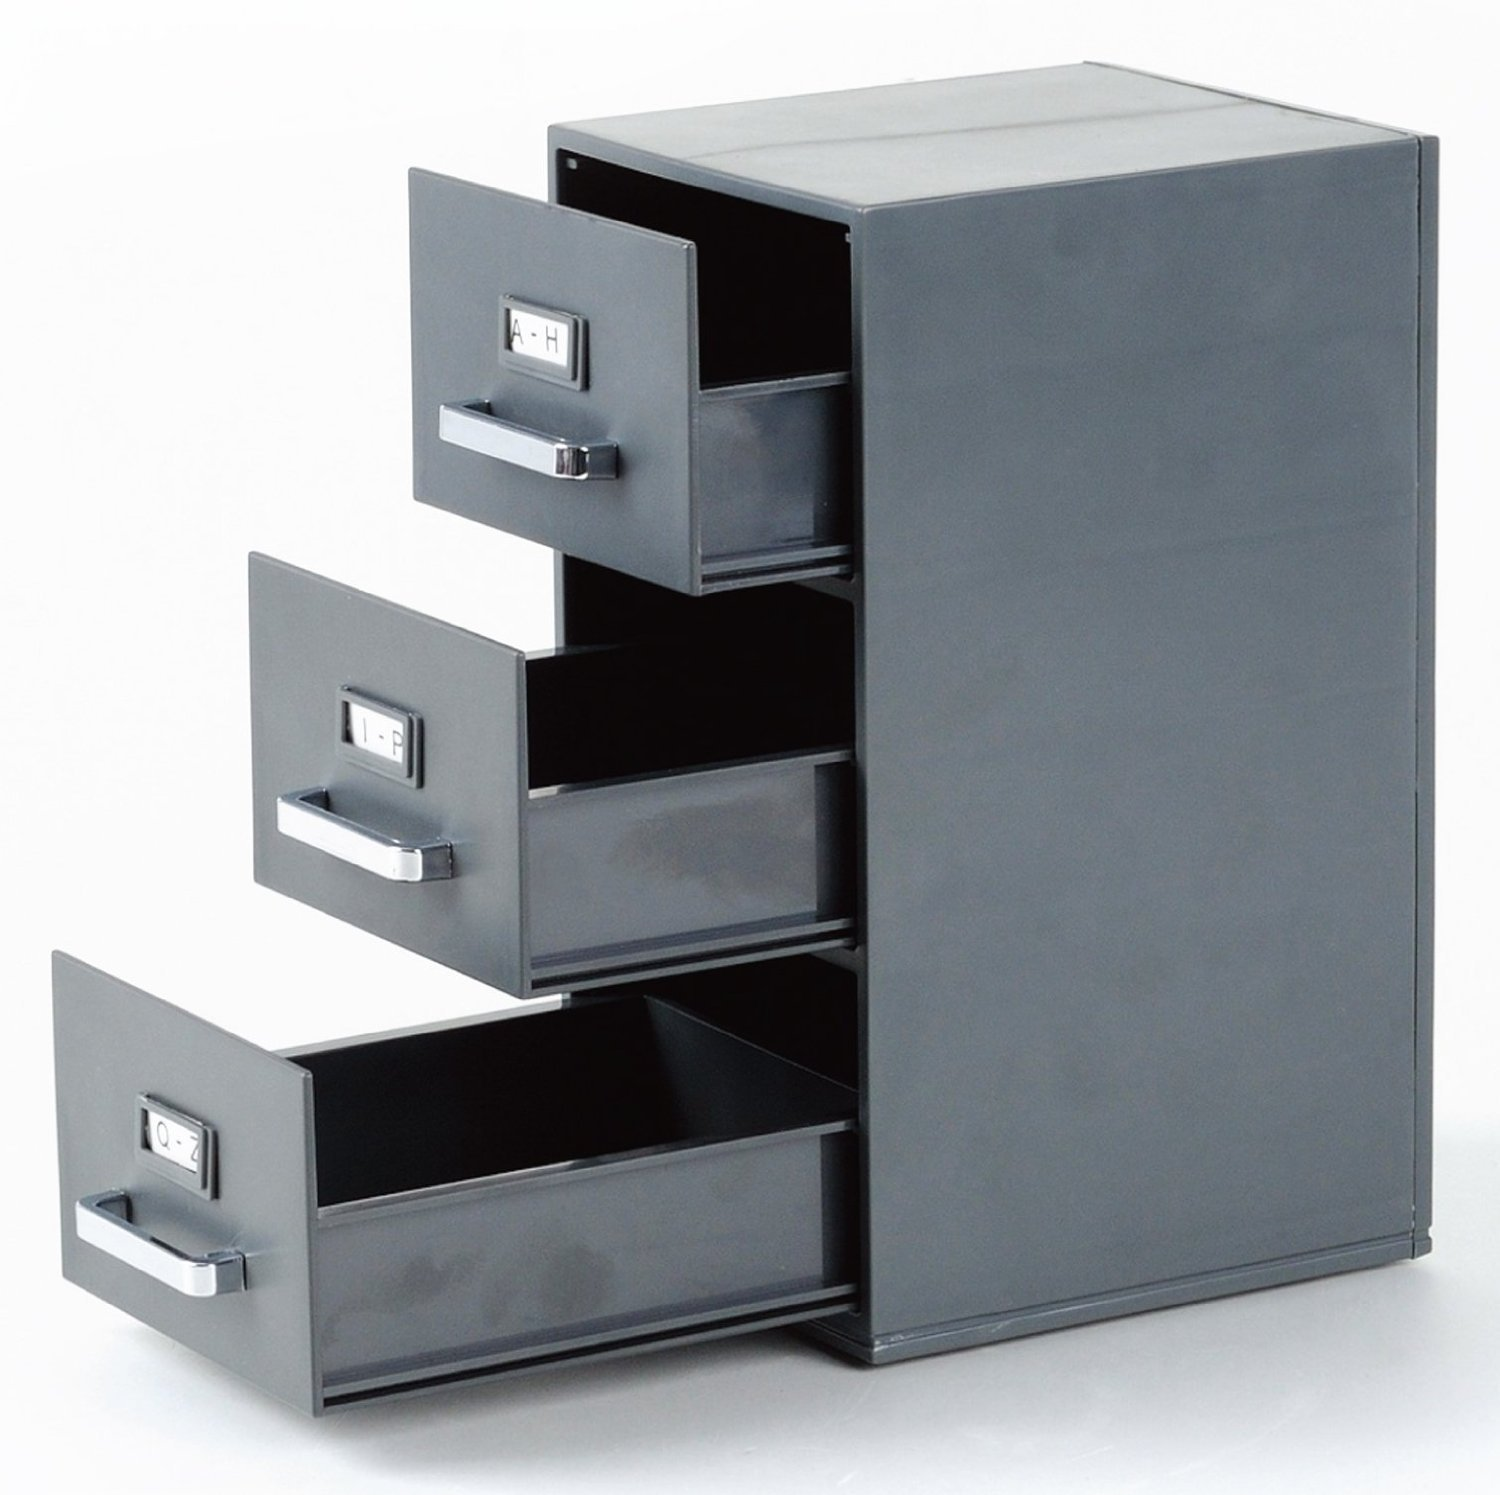 Business Card Index File Mini Desktop Filing Cabinet - - 9 inch High ...